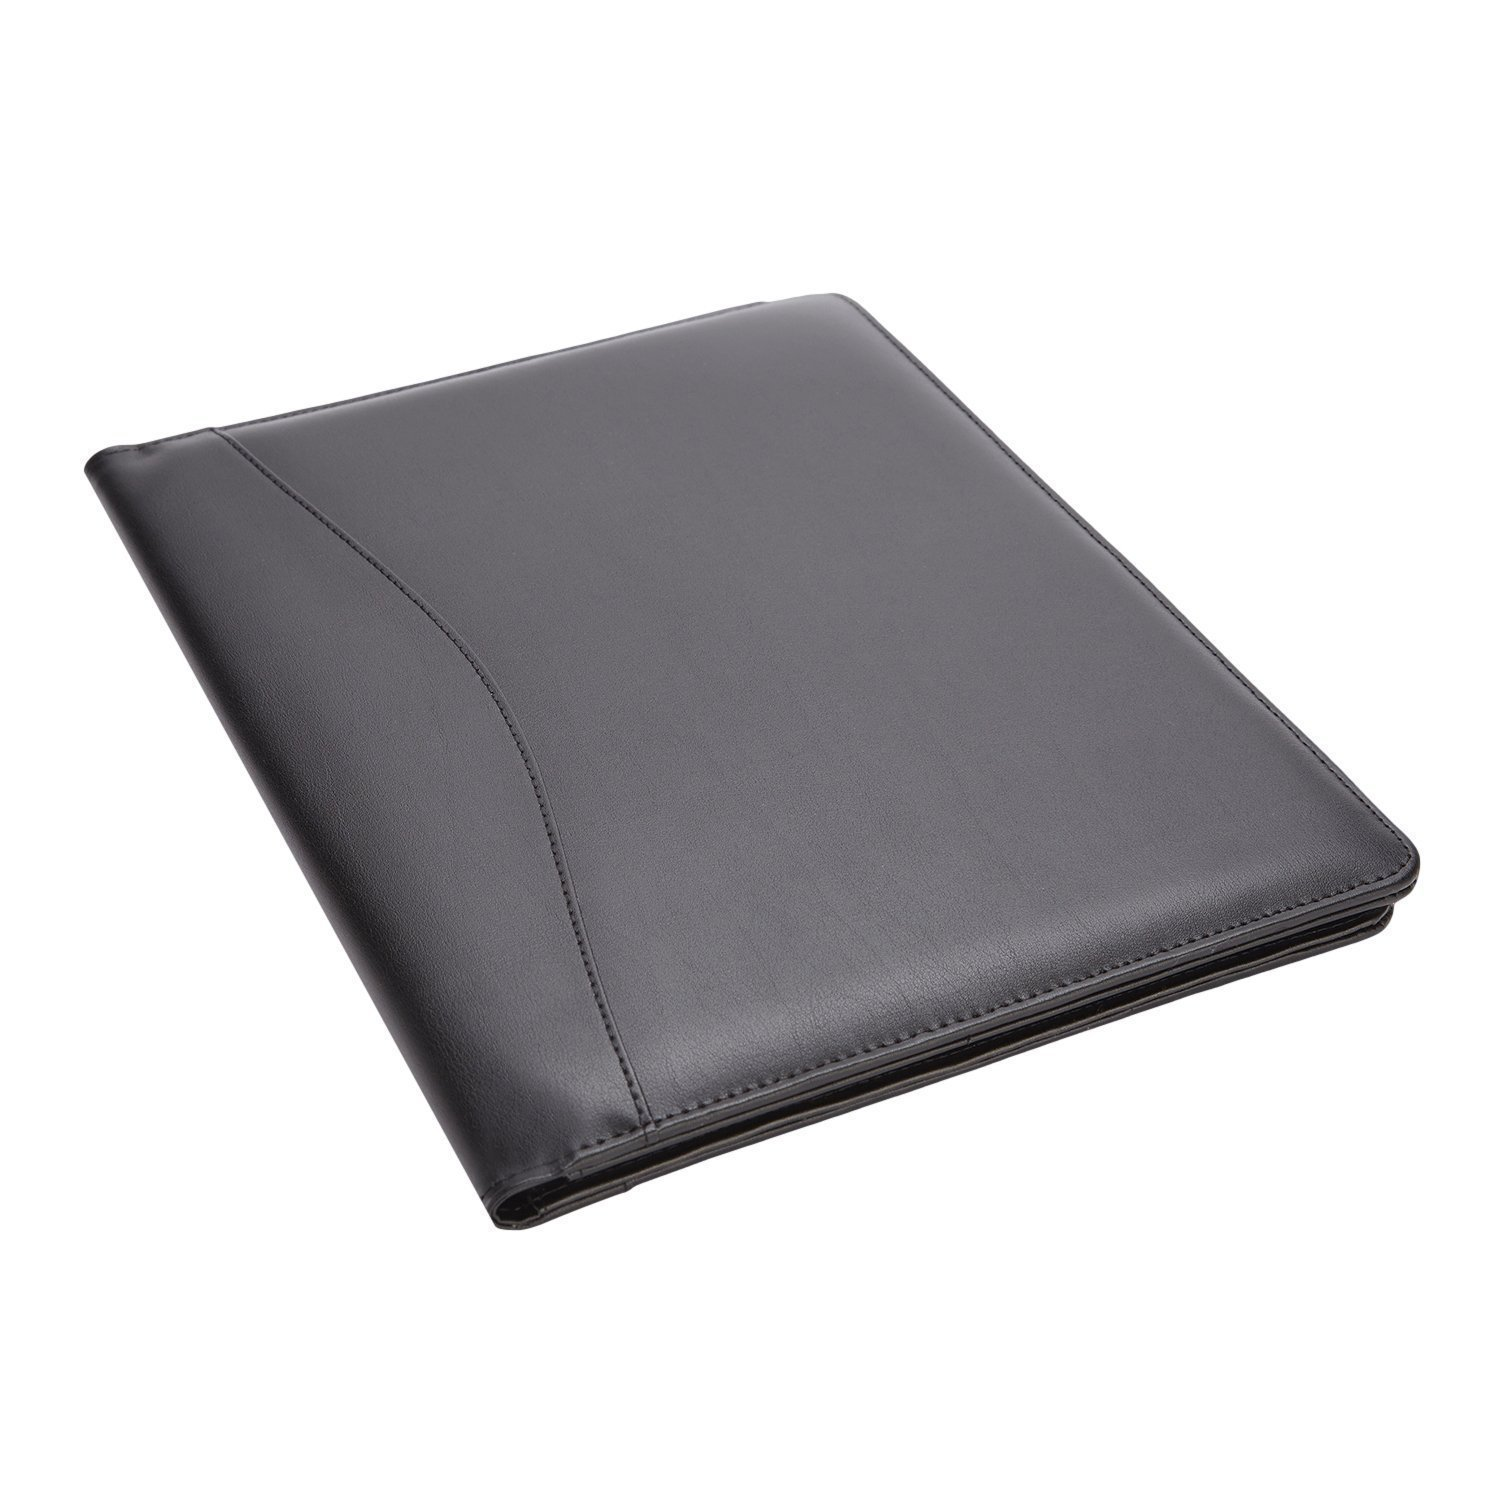 Royce Leather Royce Leather Aristo Padfolio, Matte Black